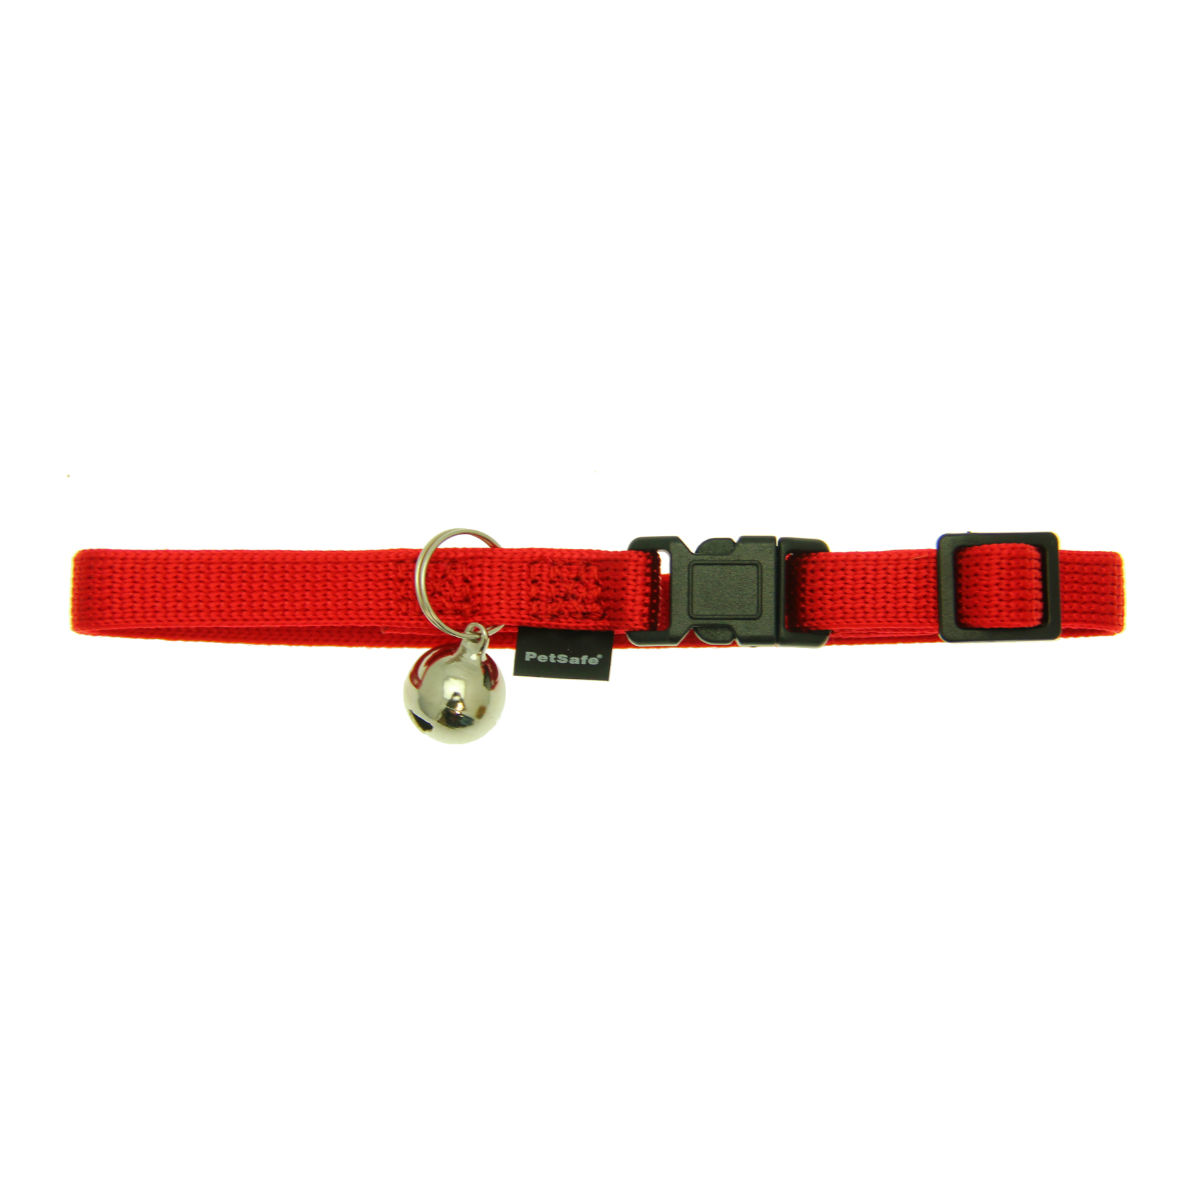 PetSafe Kitty Break-Away Cat Collar - Red